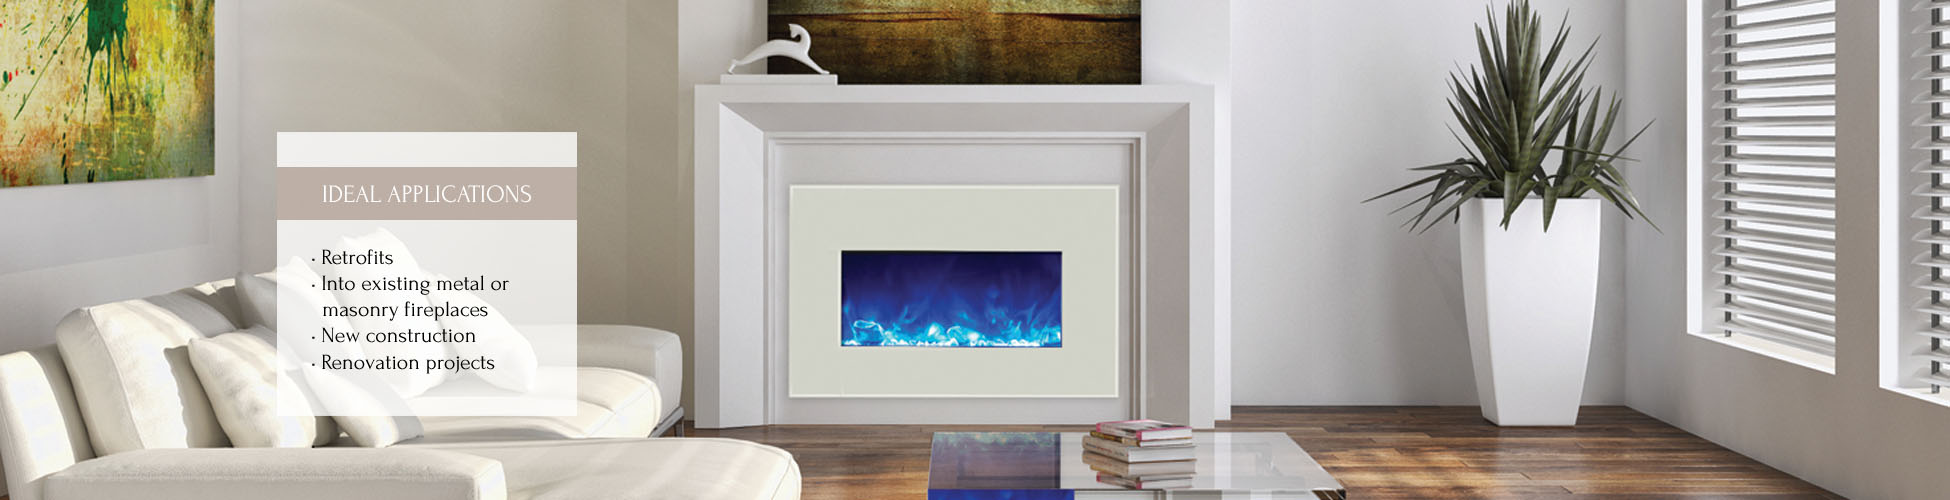 Inserts - Amantii Electric Fireplaces